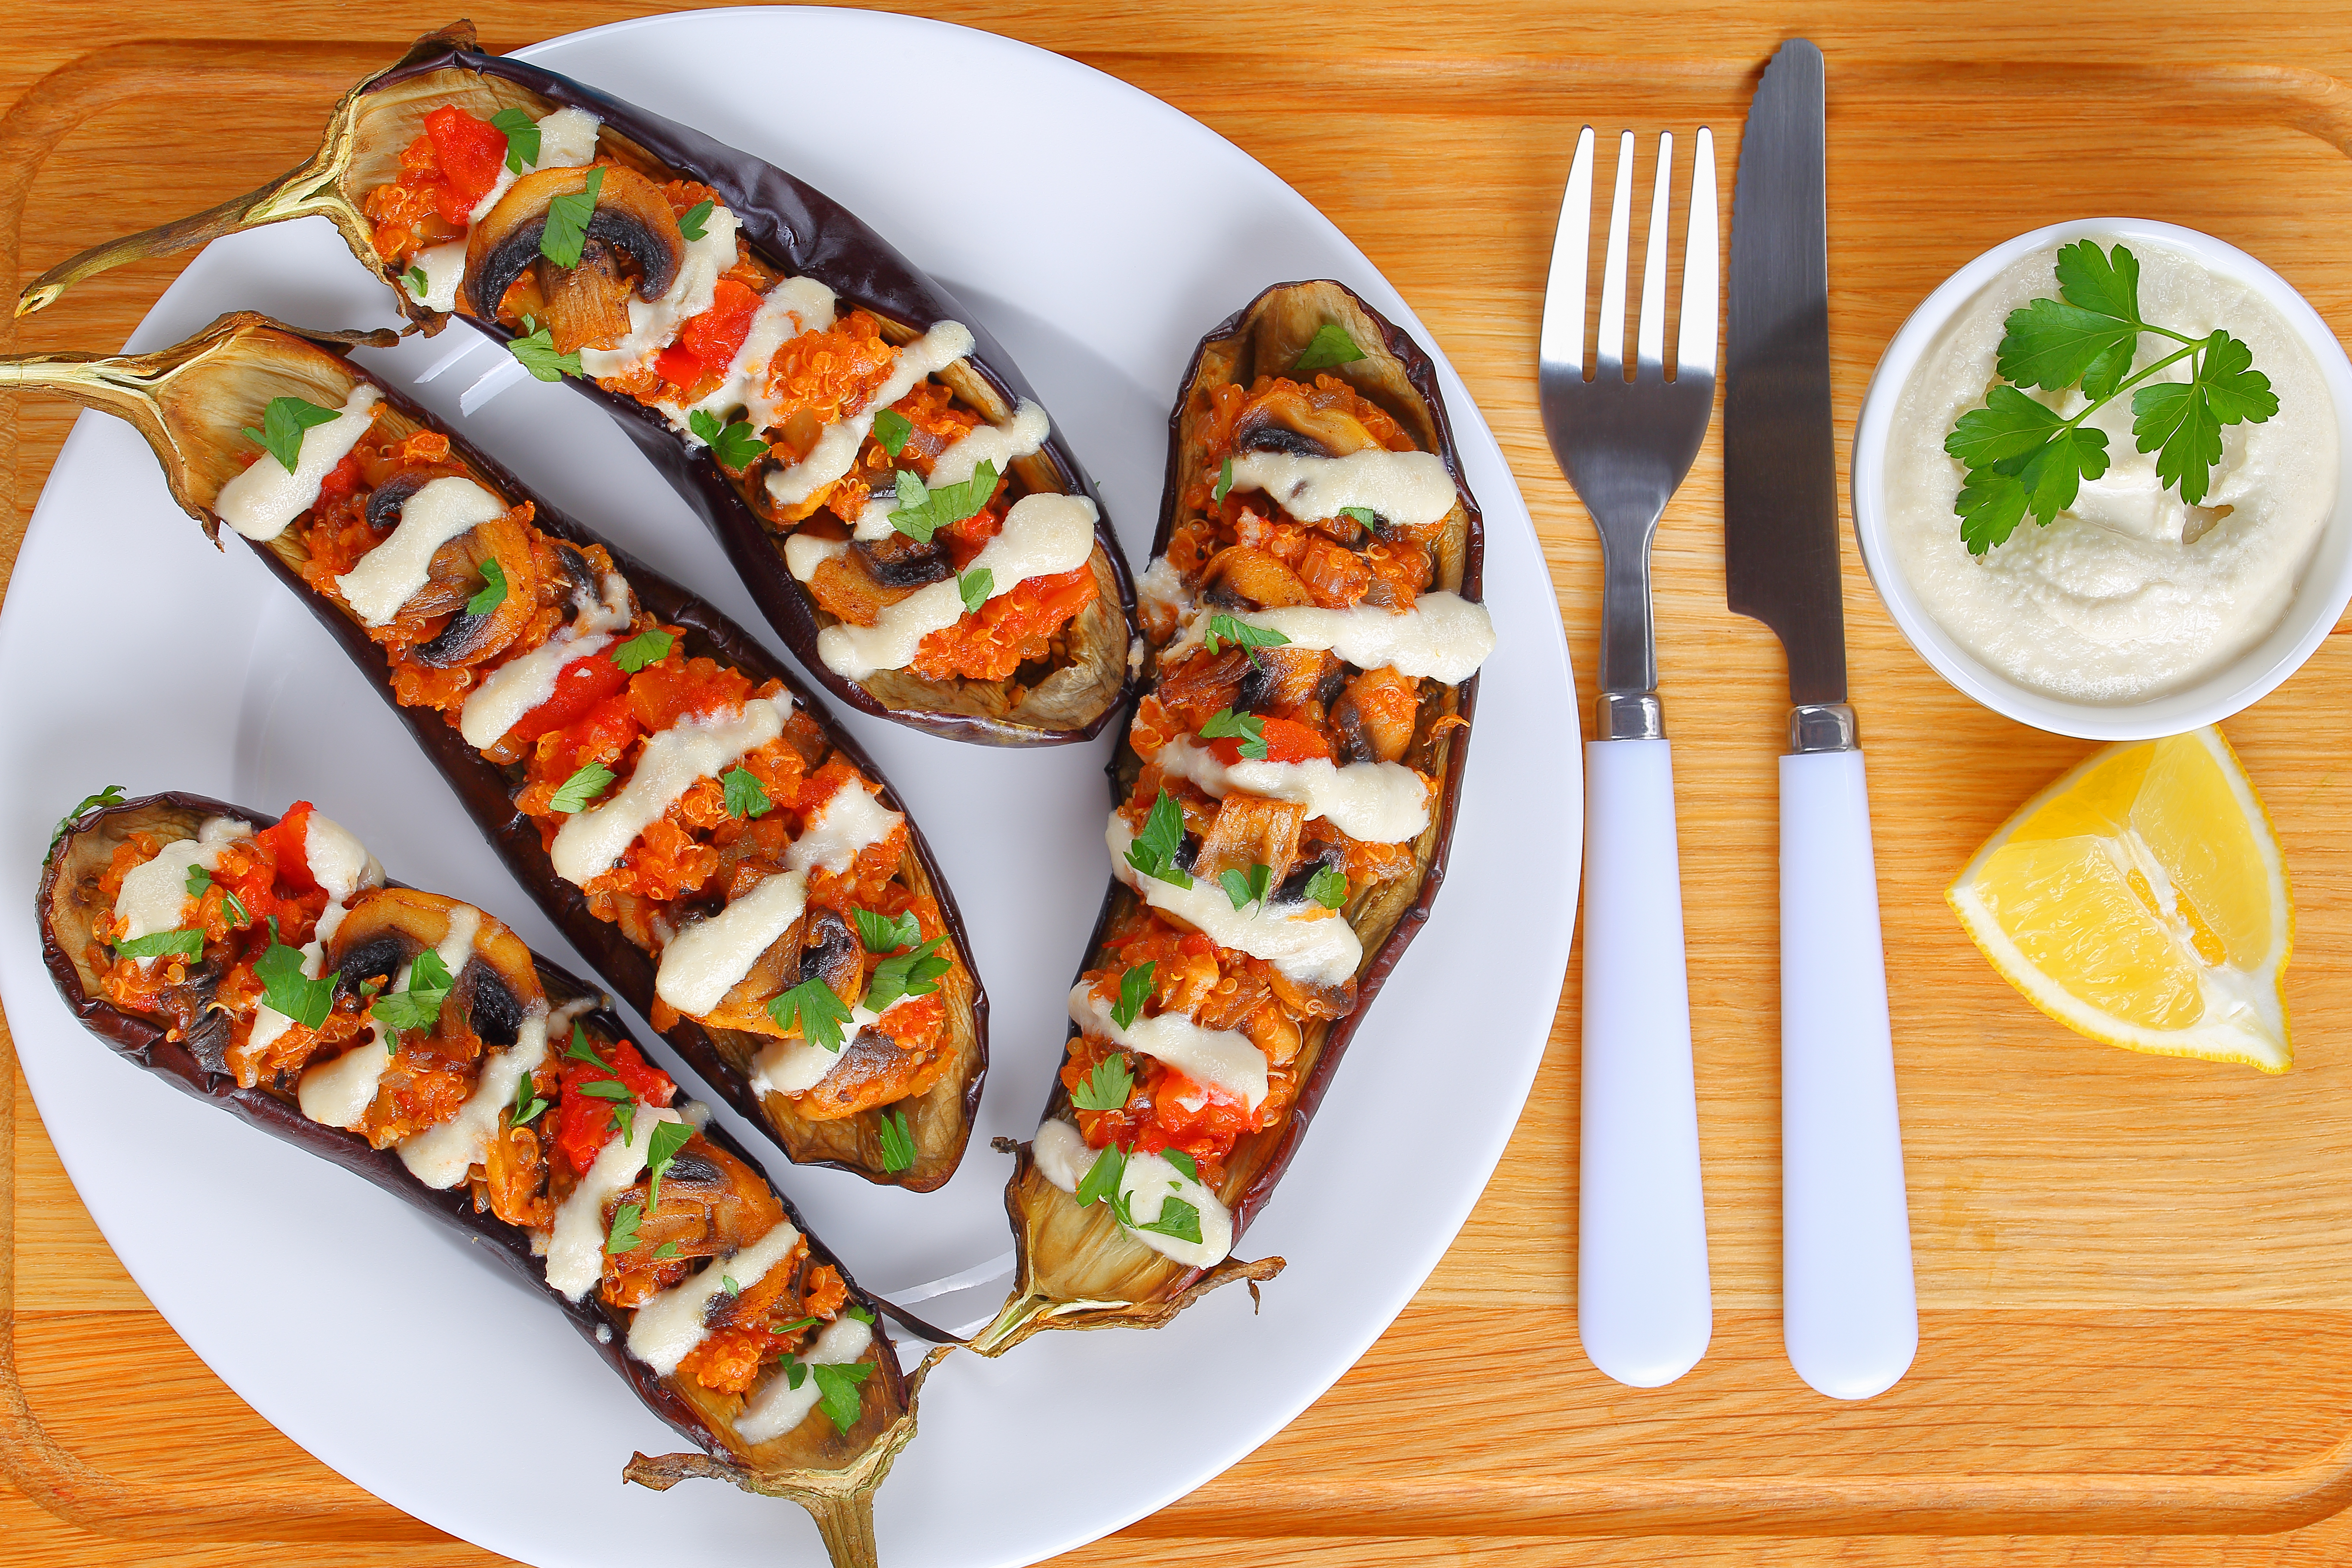 baked Eggplants Stuffed with Quinoa, top view